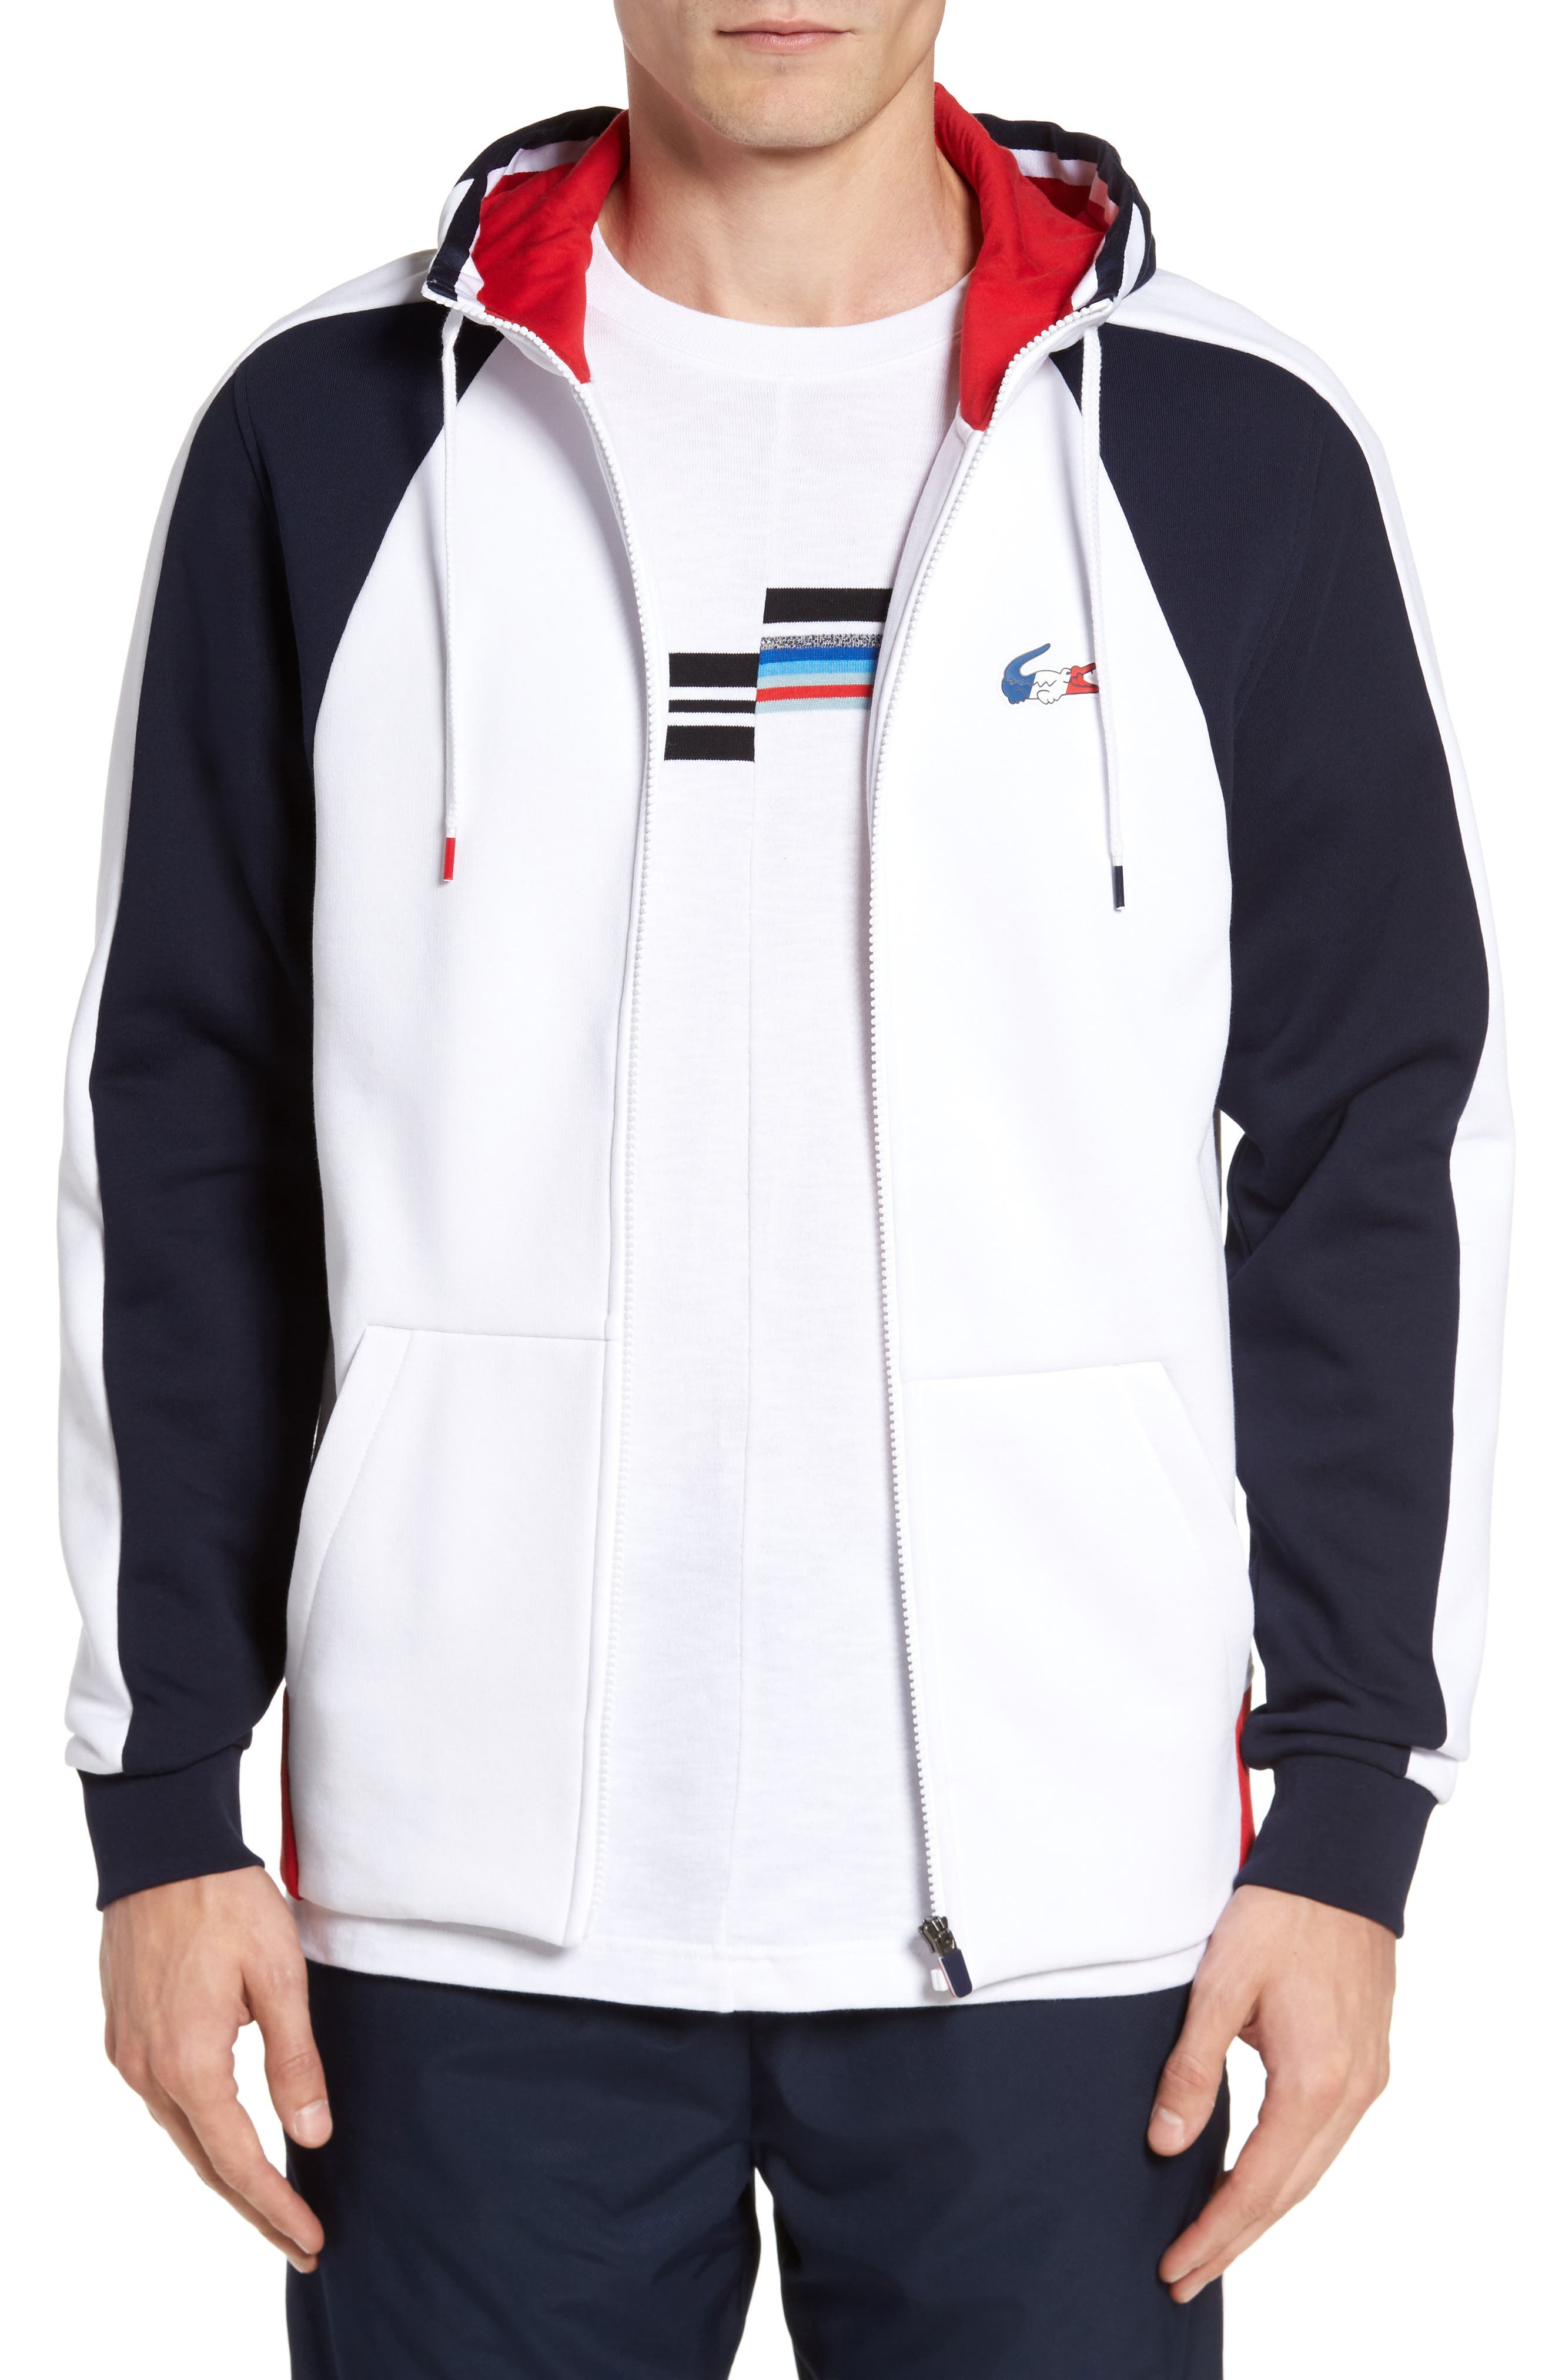 Zip Hoodie,                         Main,                         color, White/ Navy Blue/ Red